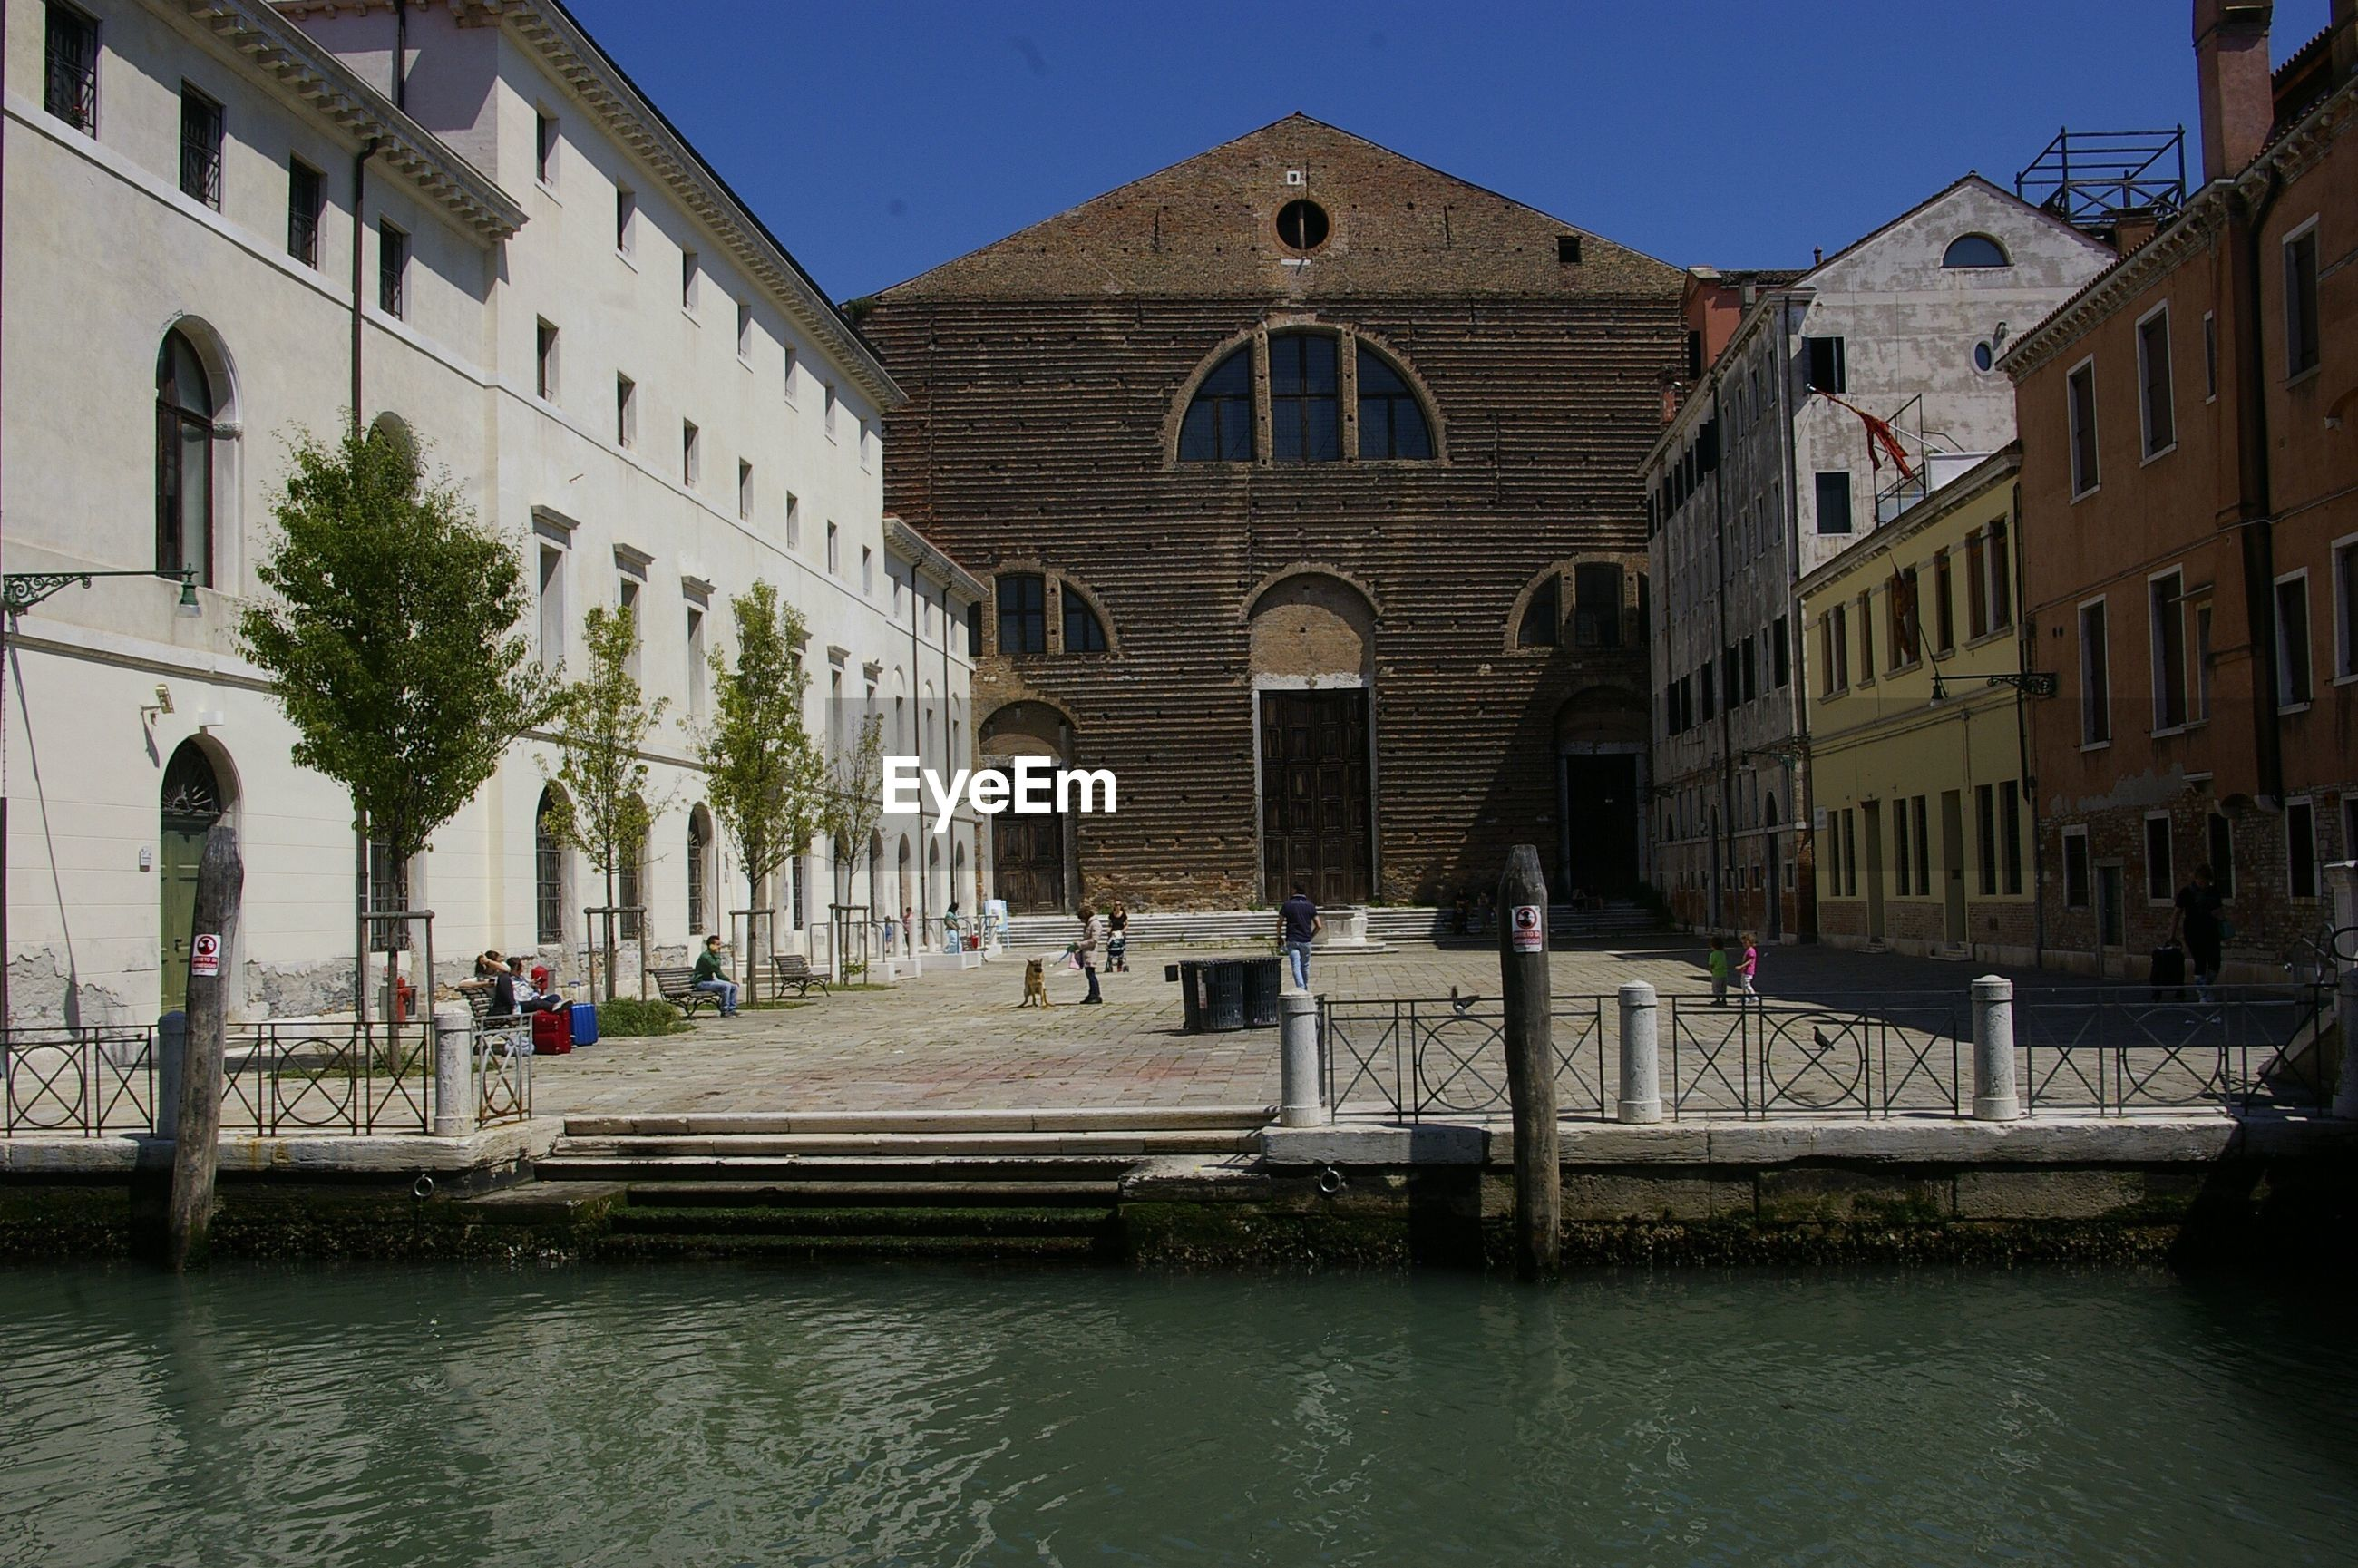 building exterior, built structure, architecture, waterfront, clear sky, water, in front of, canal, day, outdoors, sky, facade, town, city life, famous place, tourism, local landmark, place of worship, old town, history